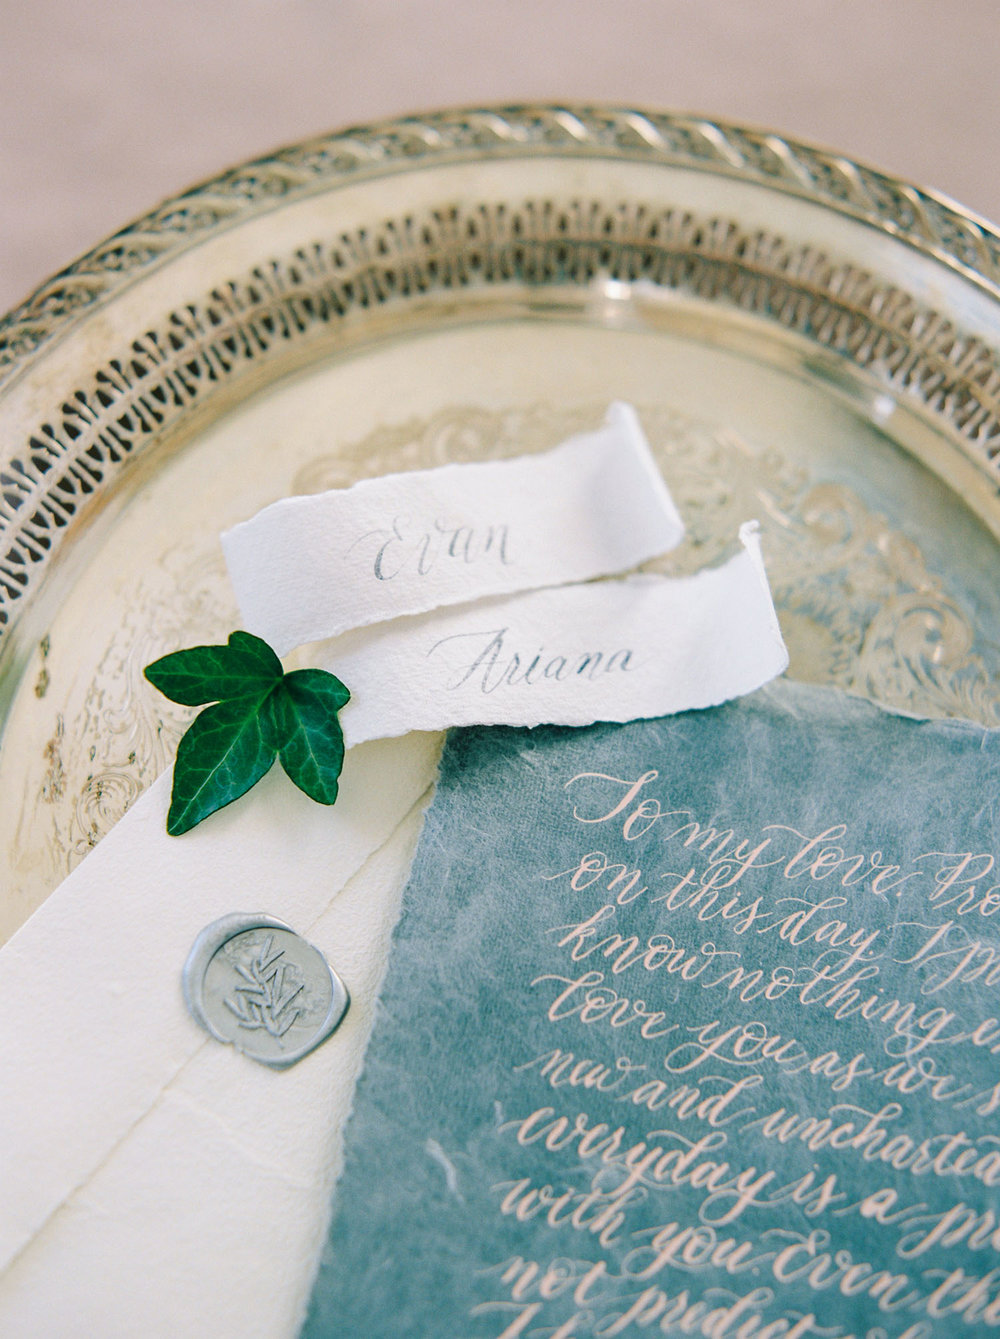 Calligraphy Calgary wedding stationery 2b.jpg